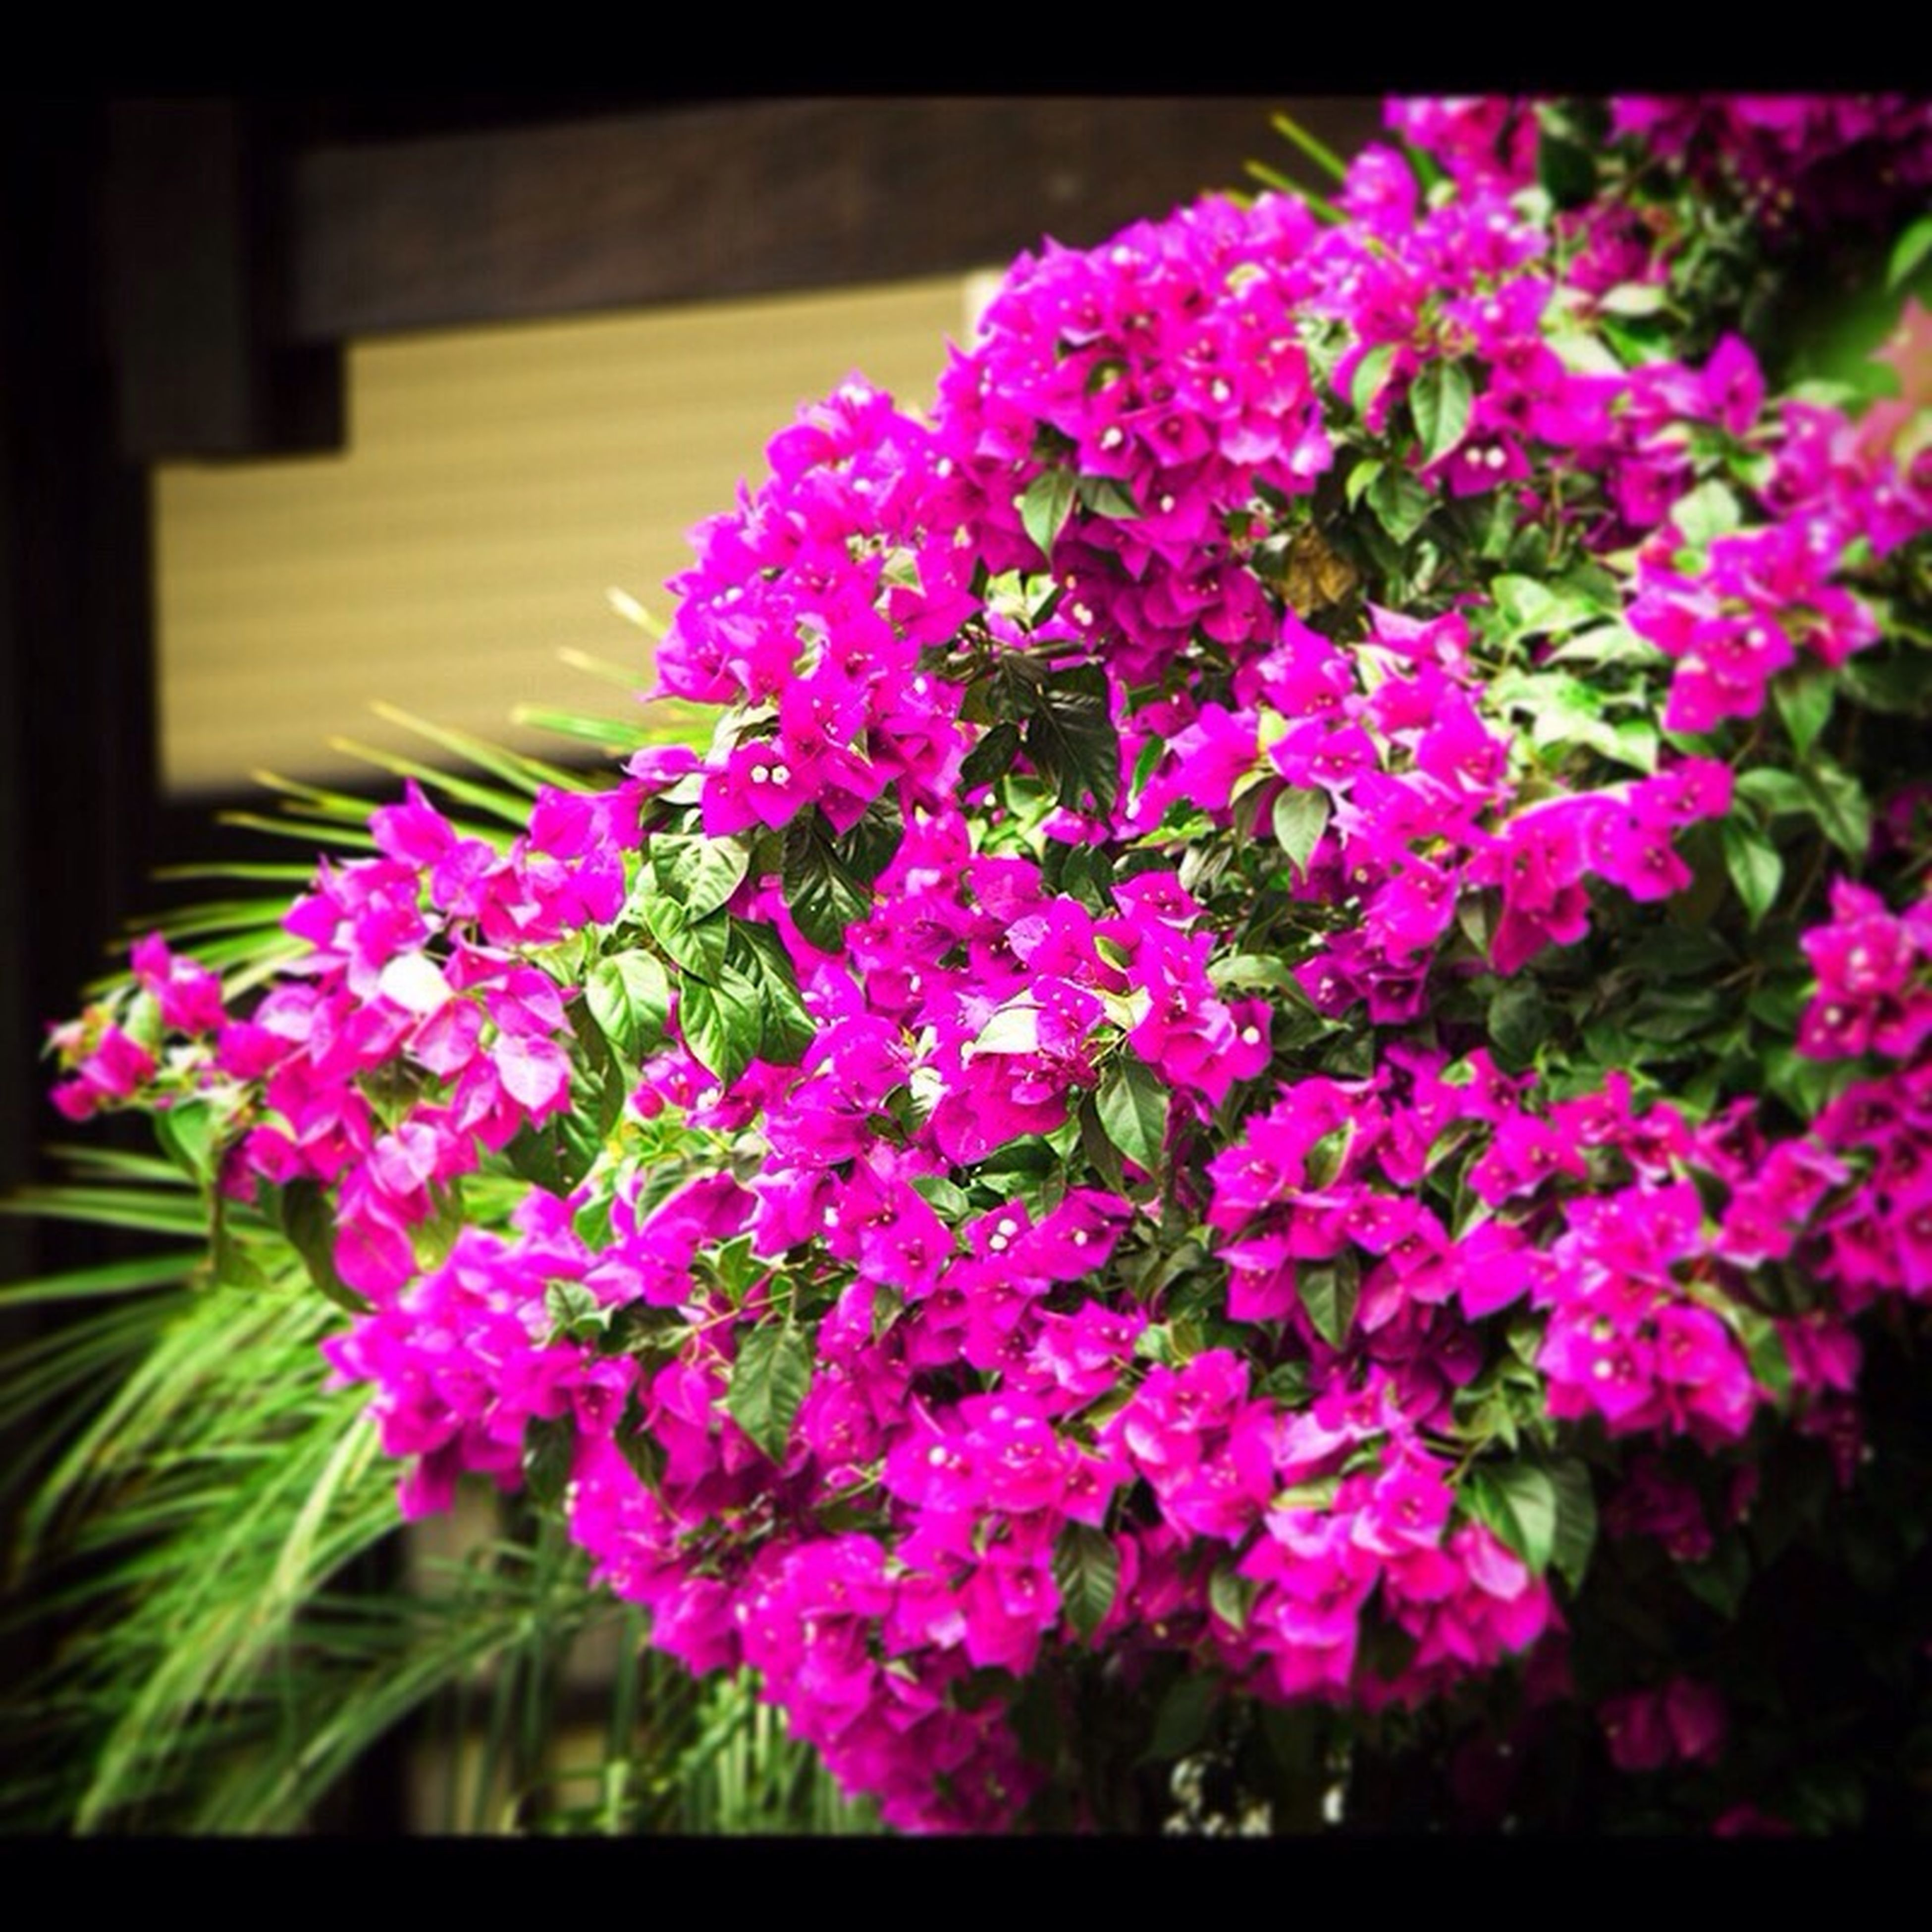 flower, freshness, fragility, petal, growth, purple, beauty in nature, transfer print, pink color, flower head, blooming, close-up, nature, auto post production filter, plant, in bloom, focus on foreground, pink, blossom, selective focus